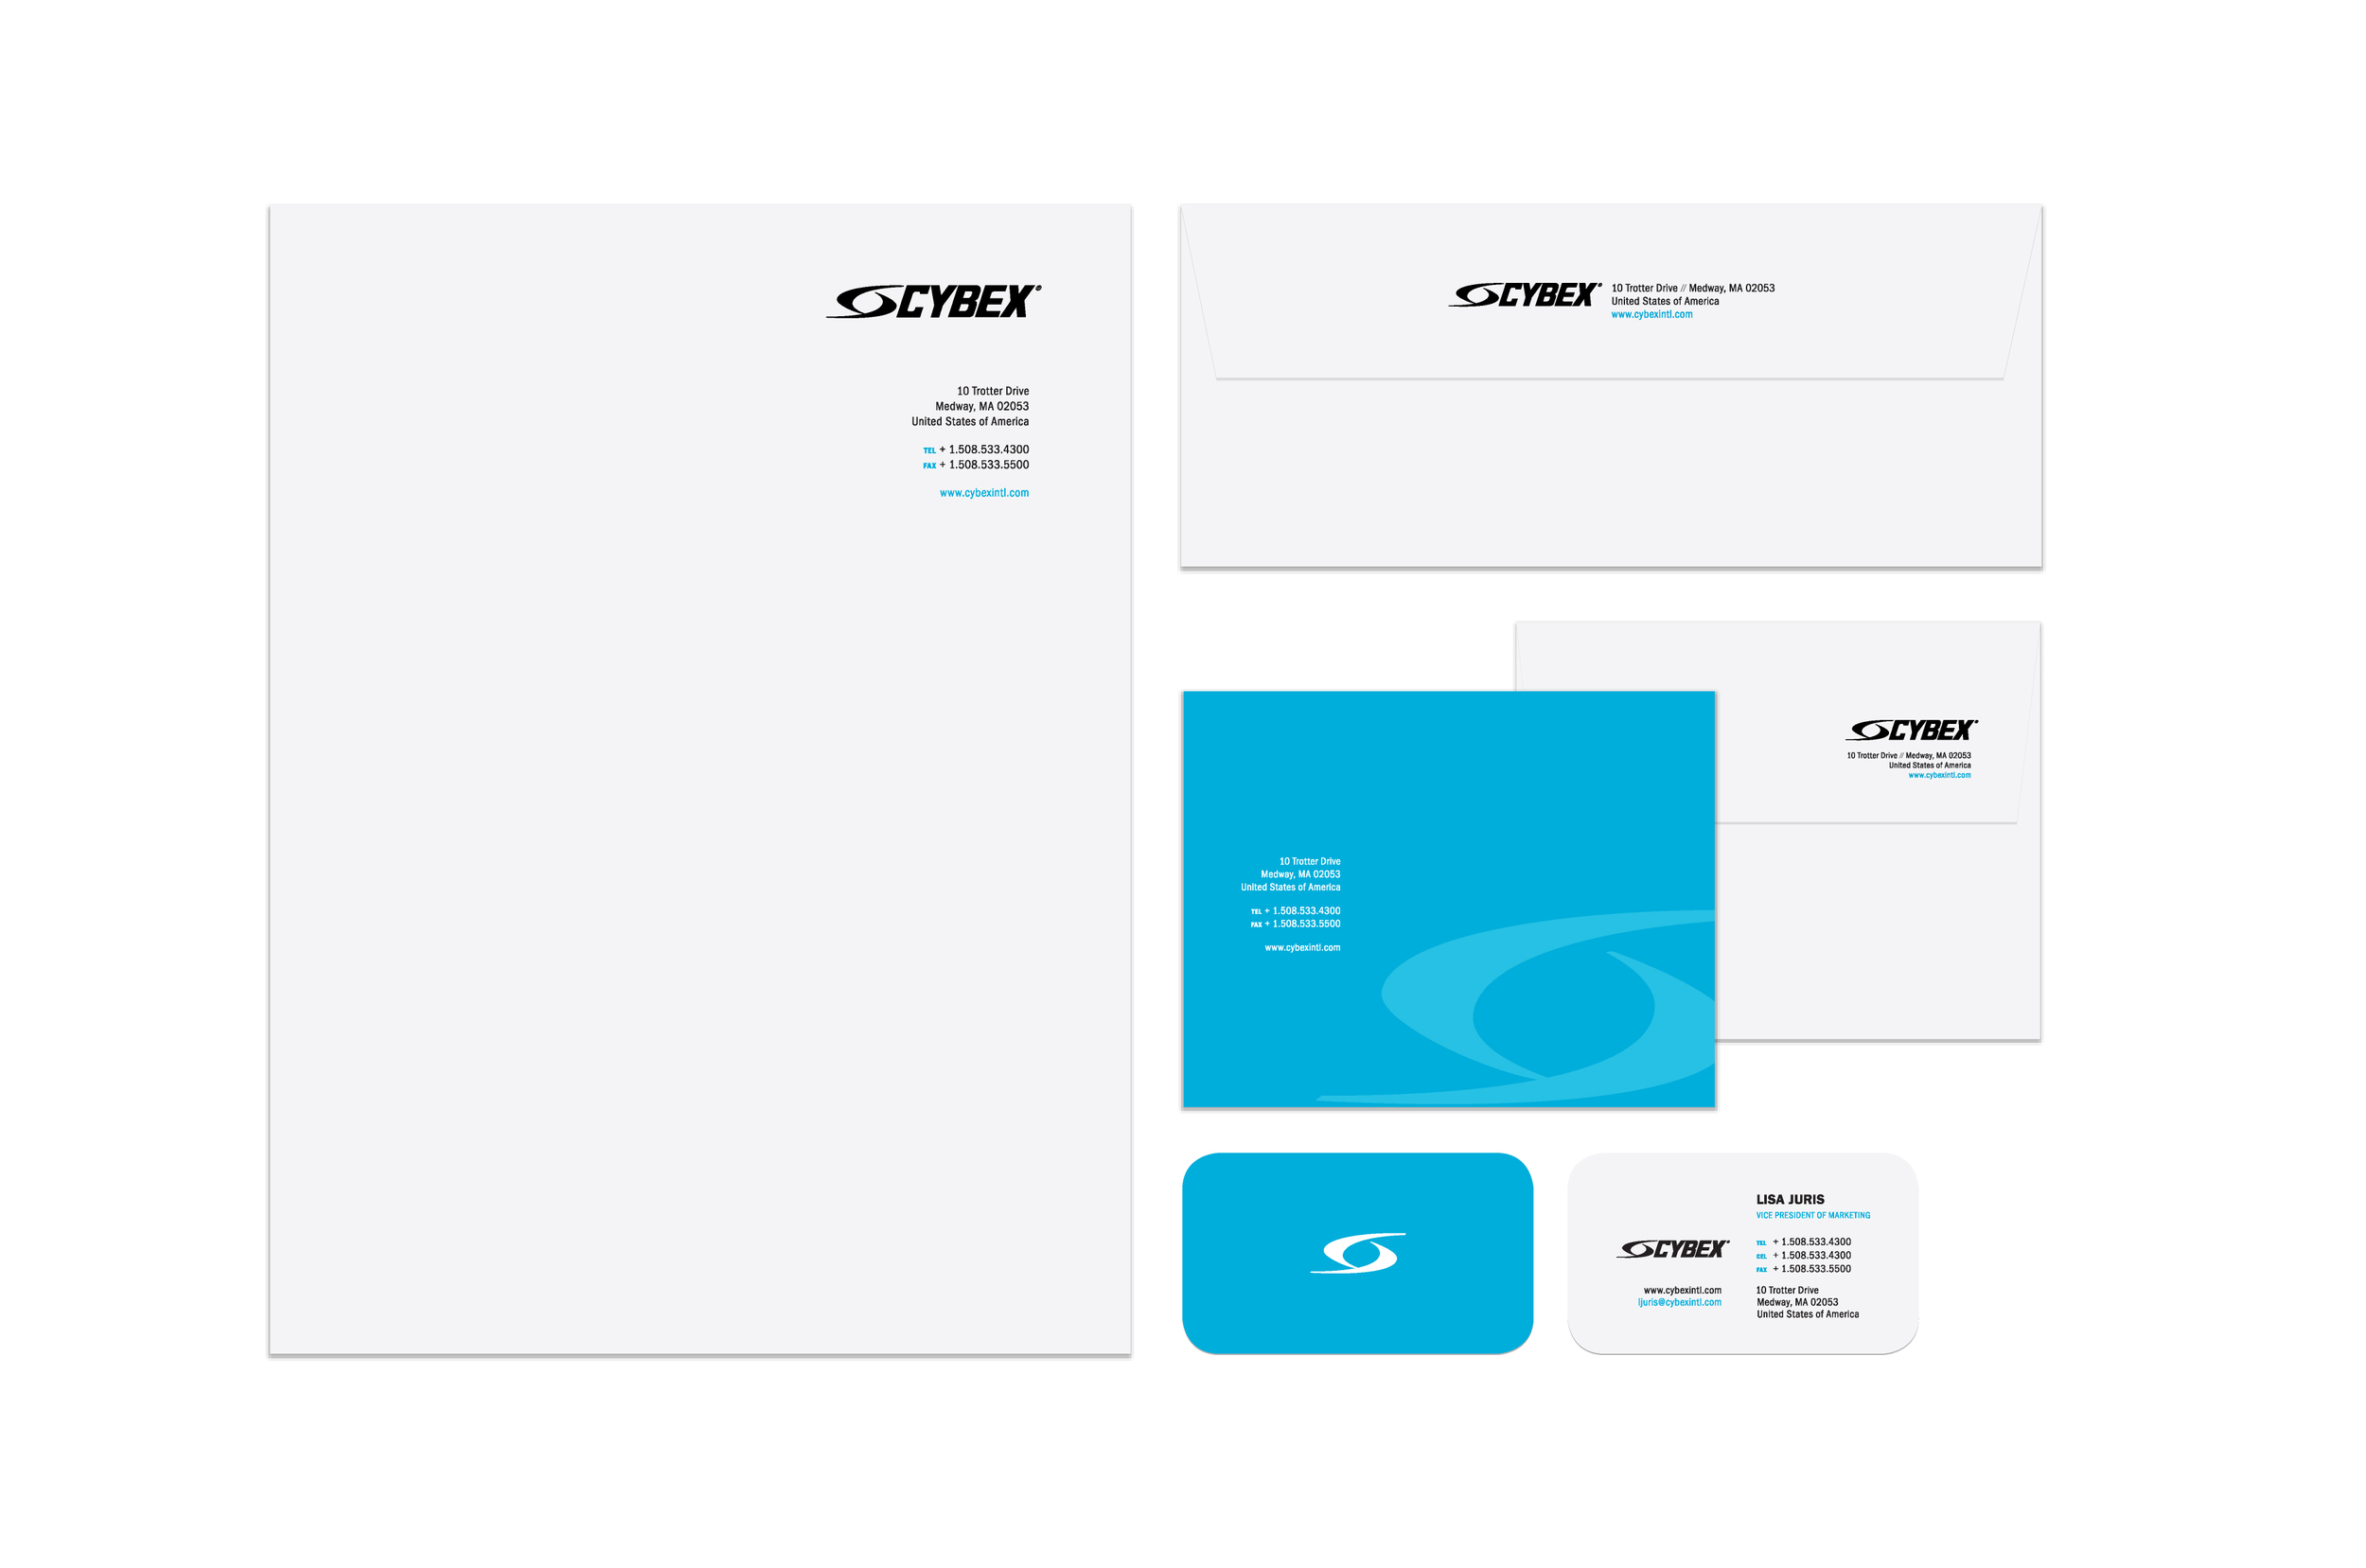 mdg_cybex_stationery